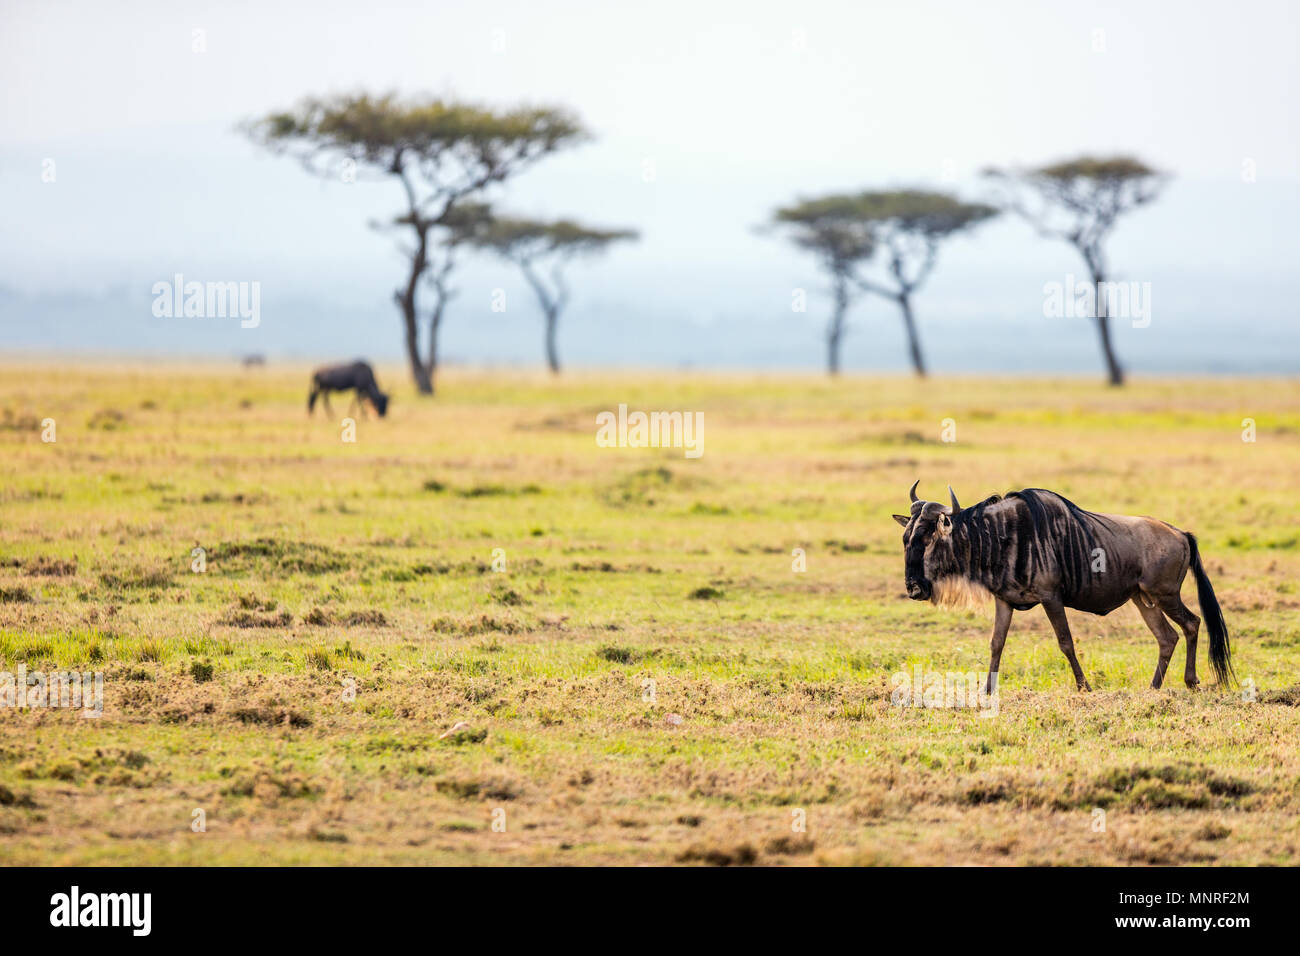 Wildebeests in Masai Mara National park in Kenya - Stock Image